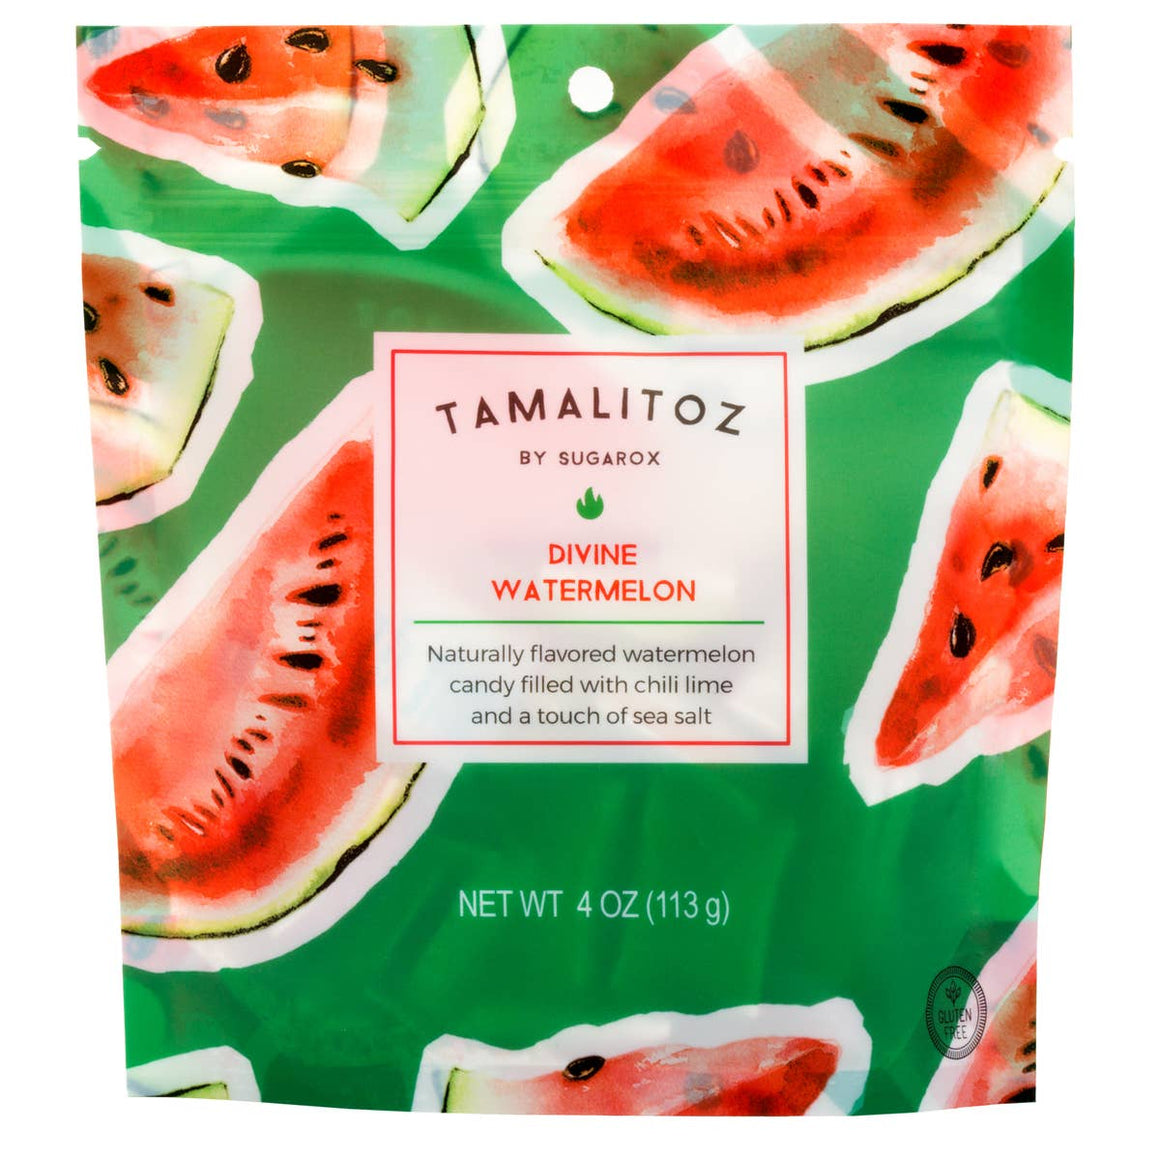 Tamalitos - Divine Watermelon